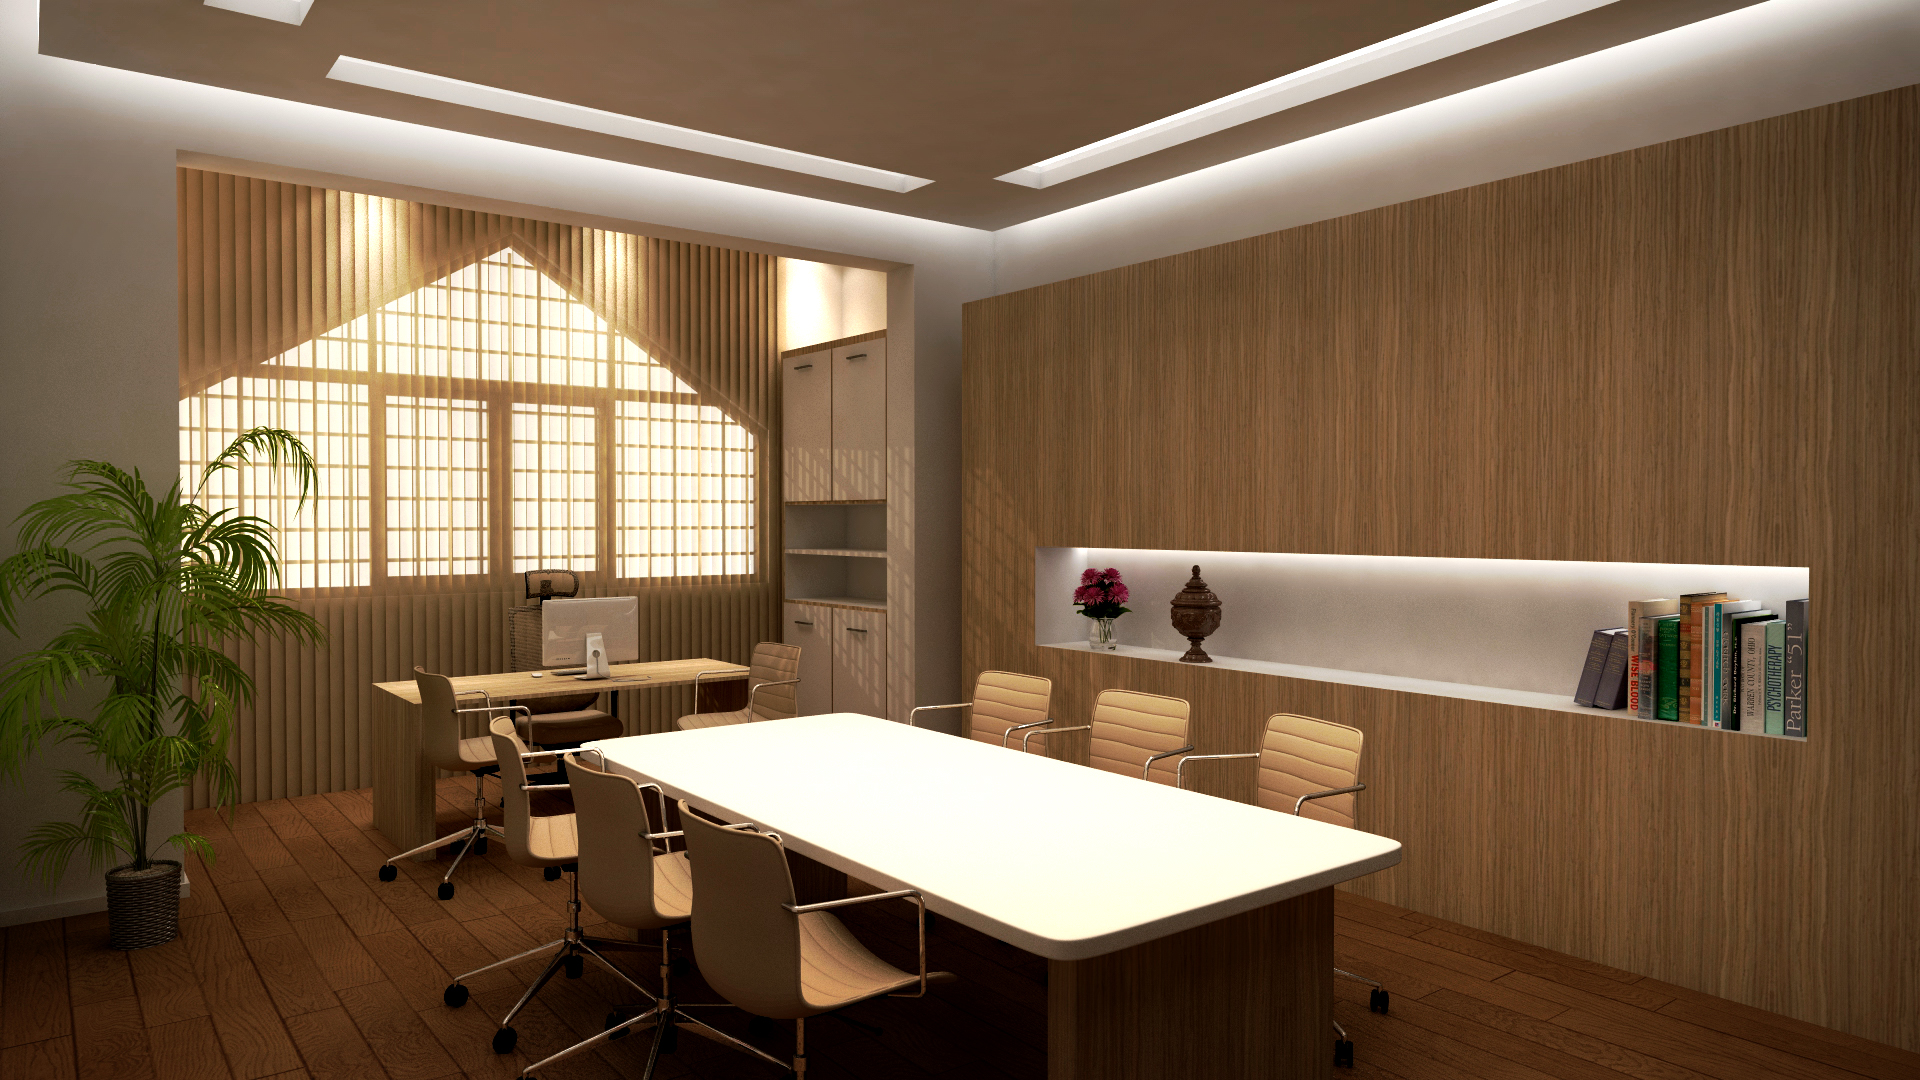 100 interior designers companies best interior for Top interior design firms